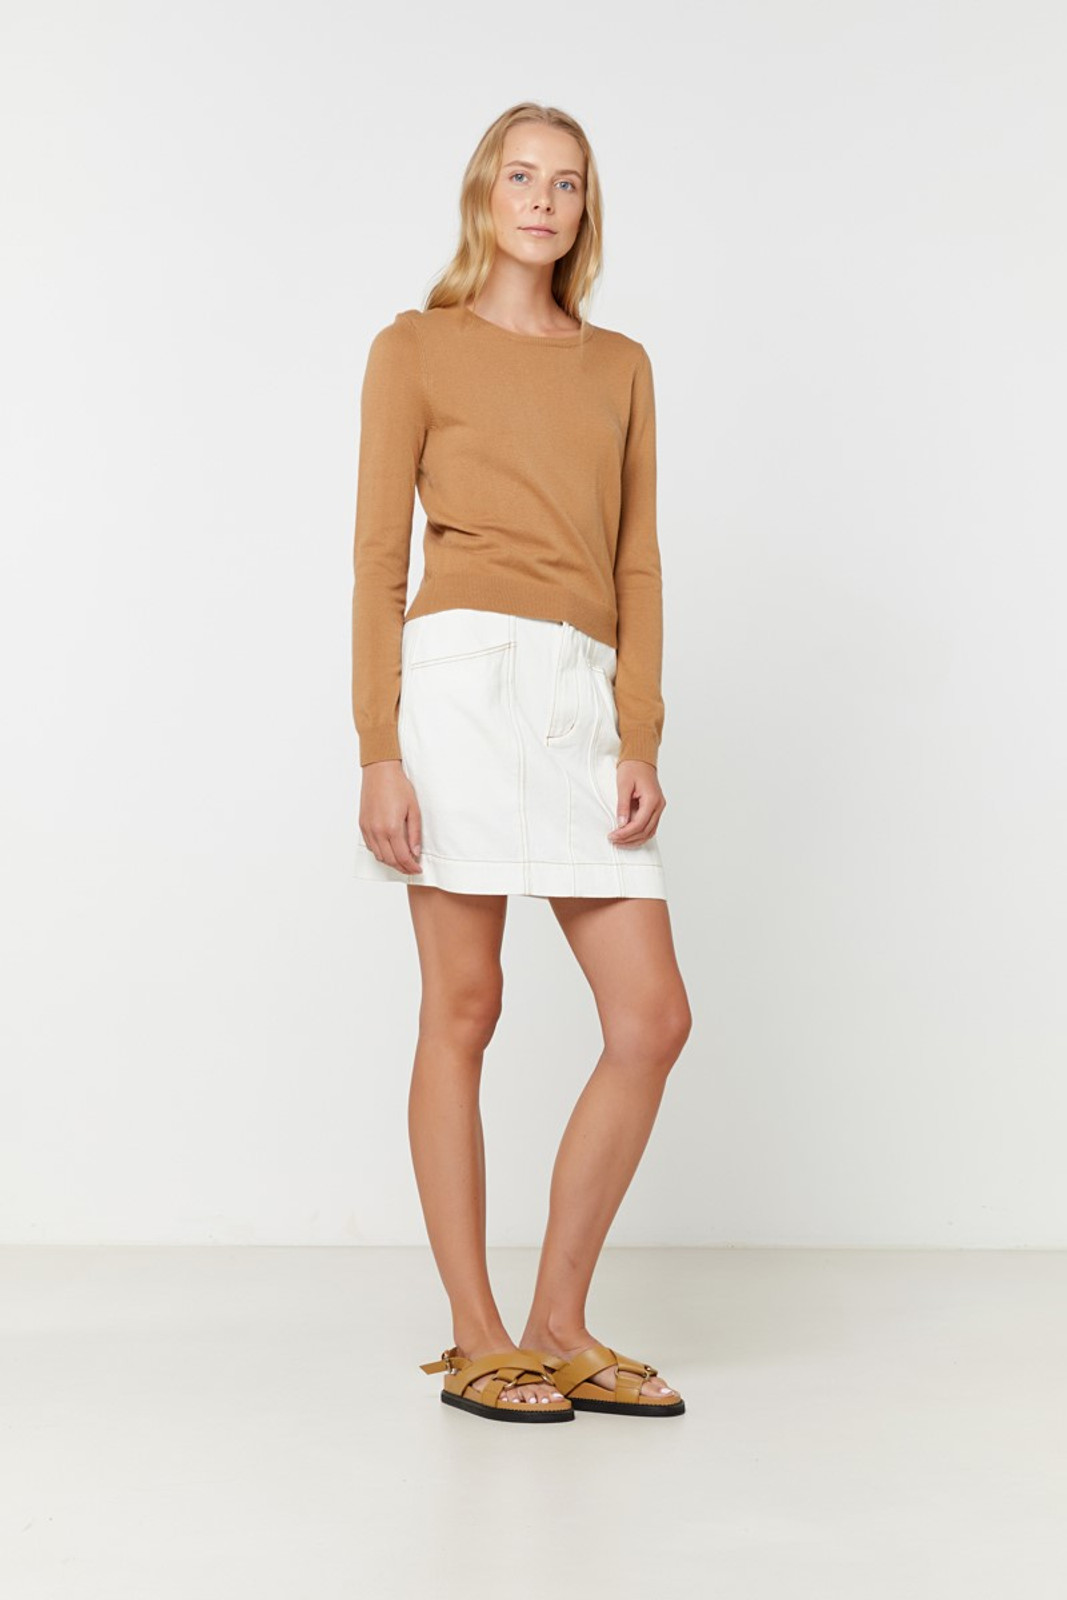 Elka Collective Gale Knit Neutrals  4